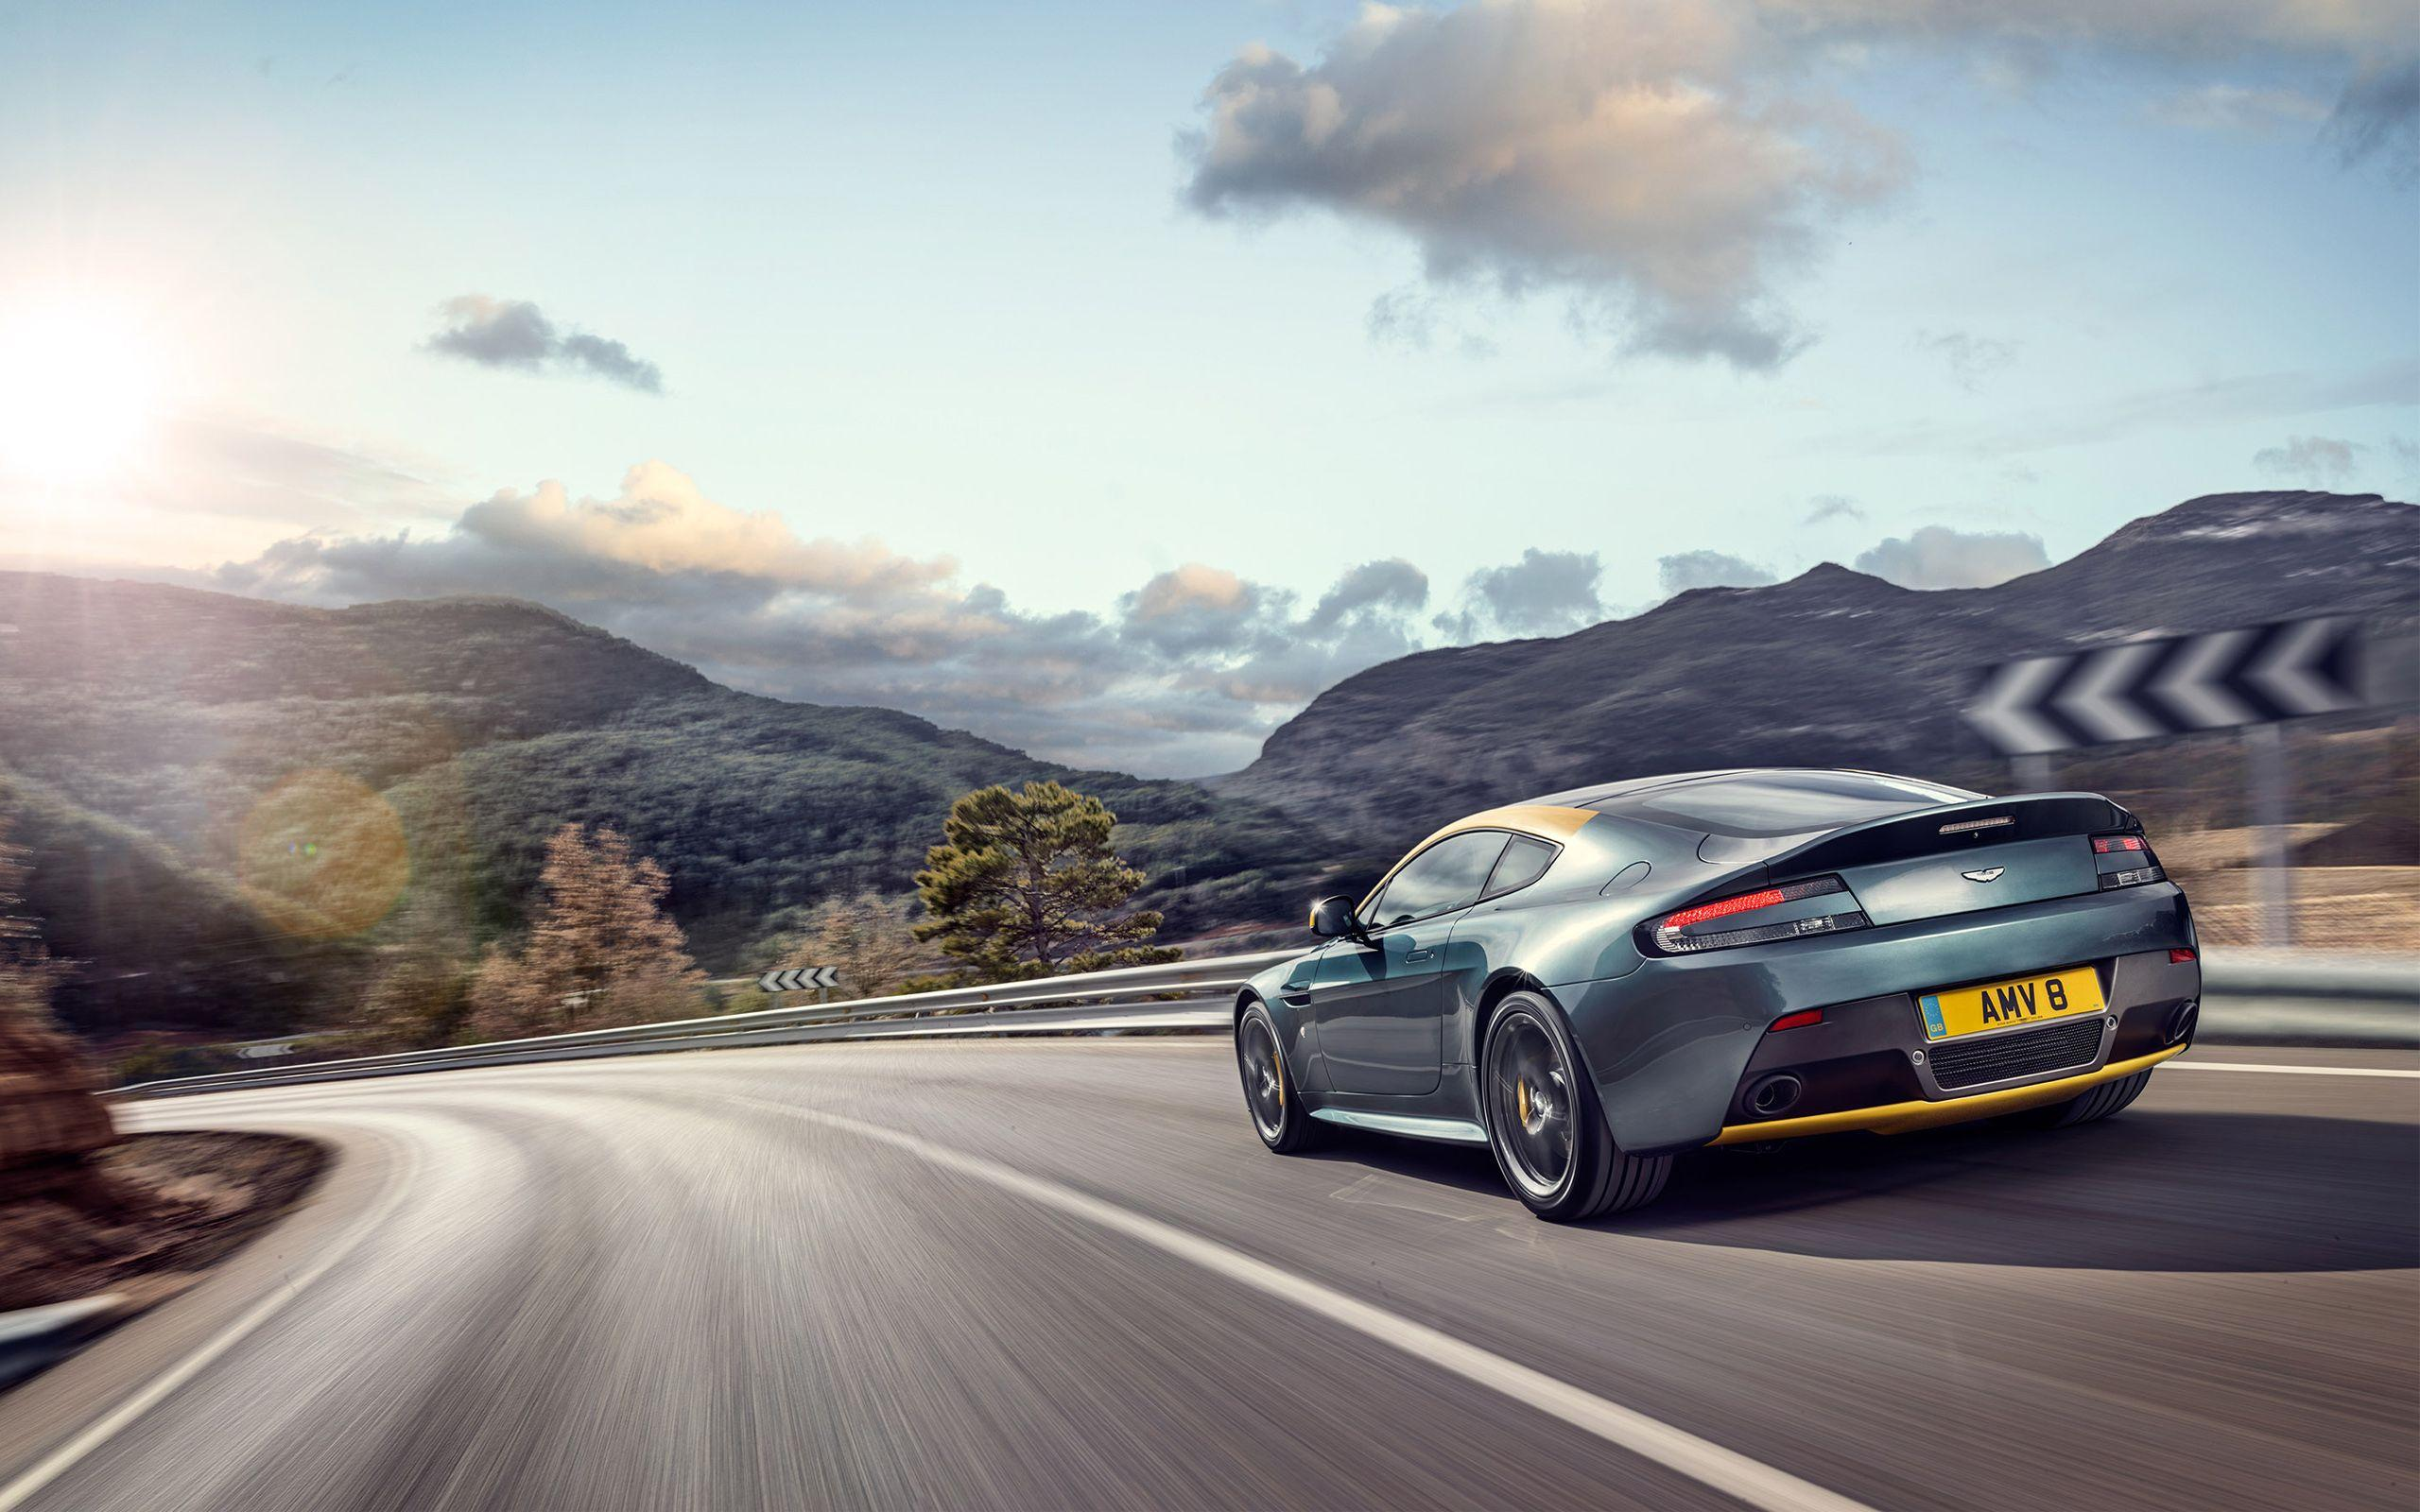 Aston Martin V8 Vantage Wallpapers Wallpaper Cave